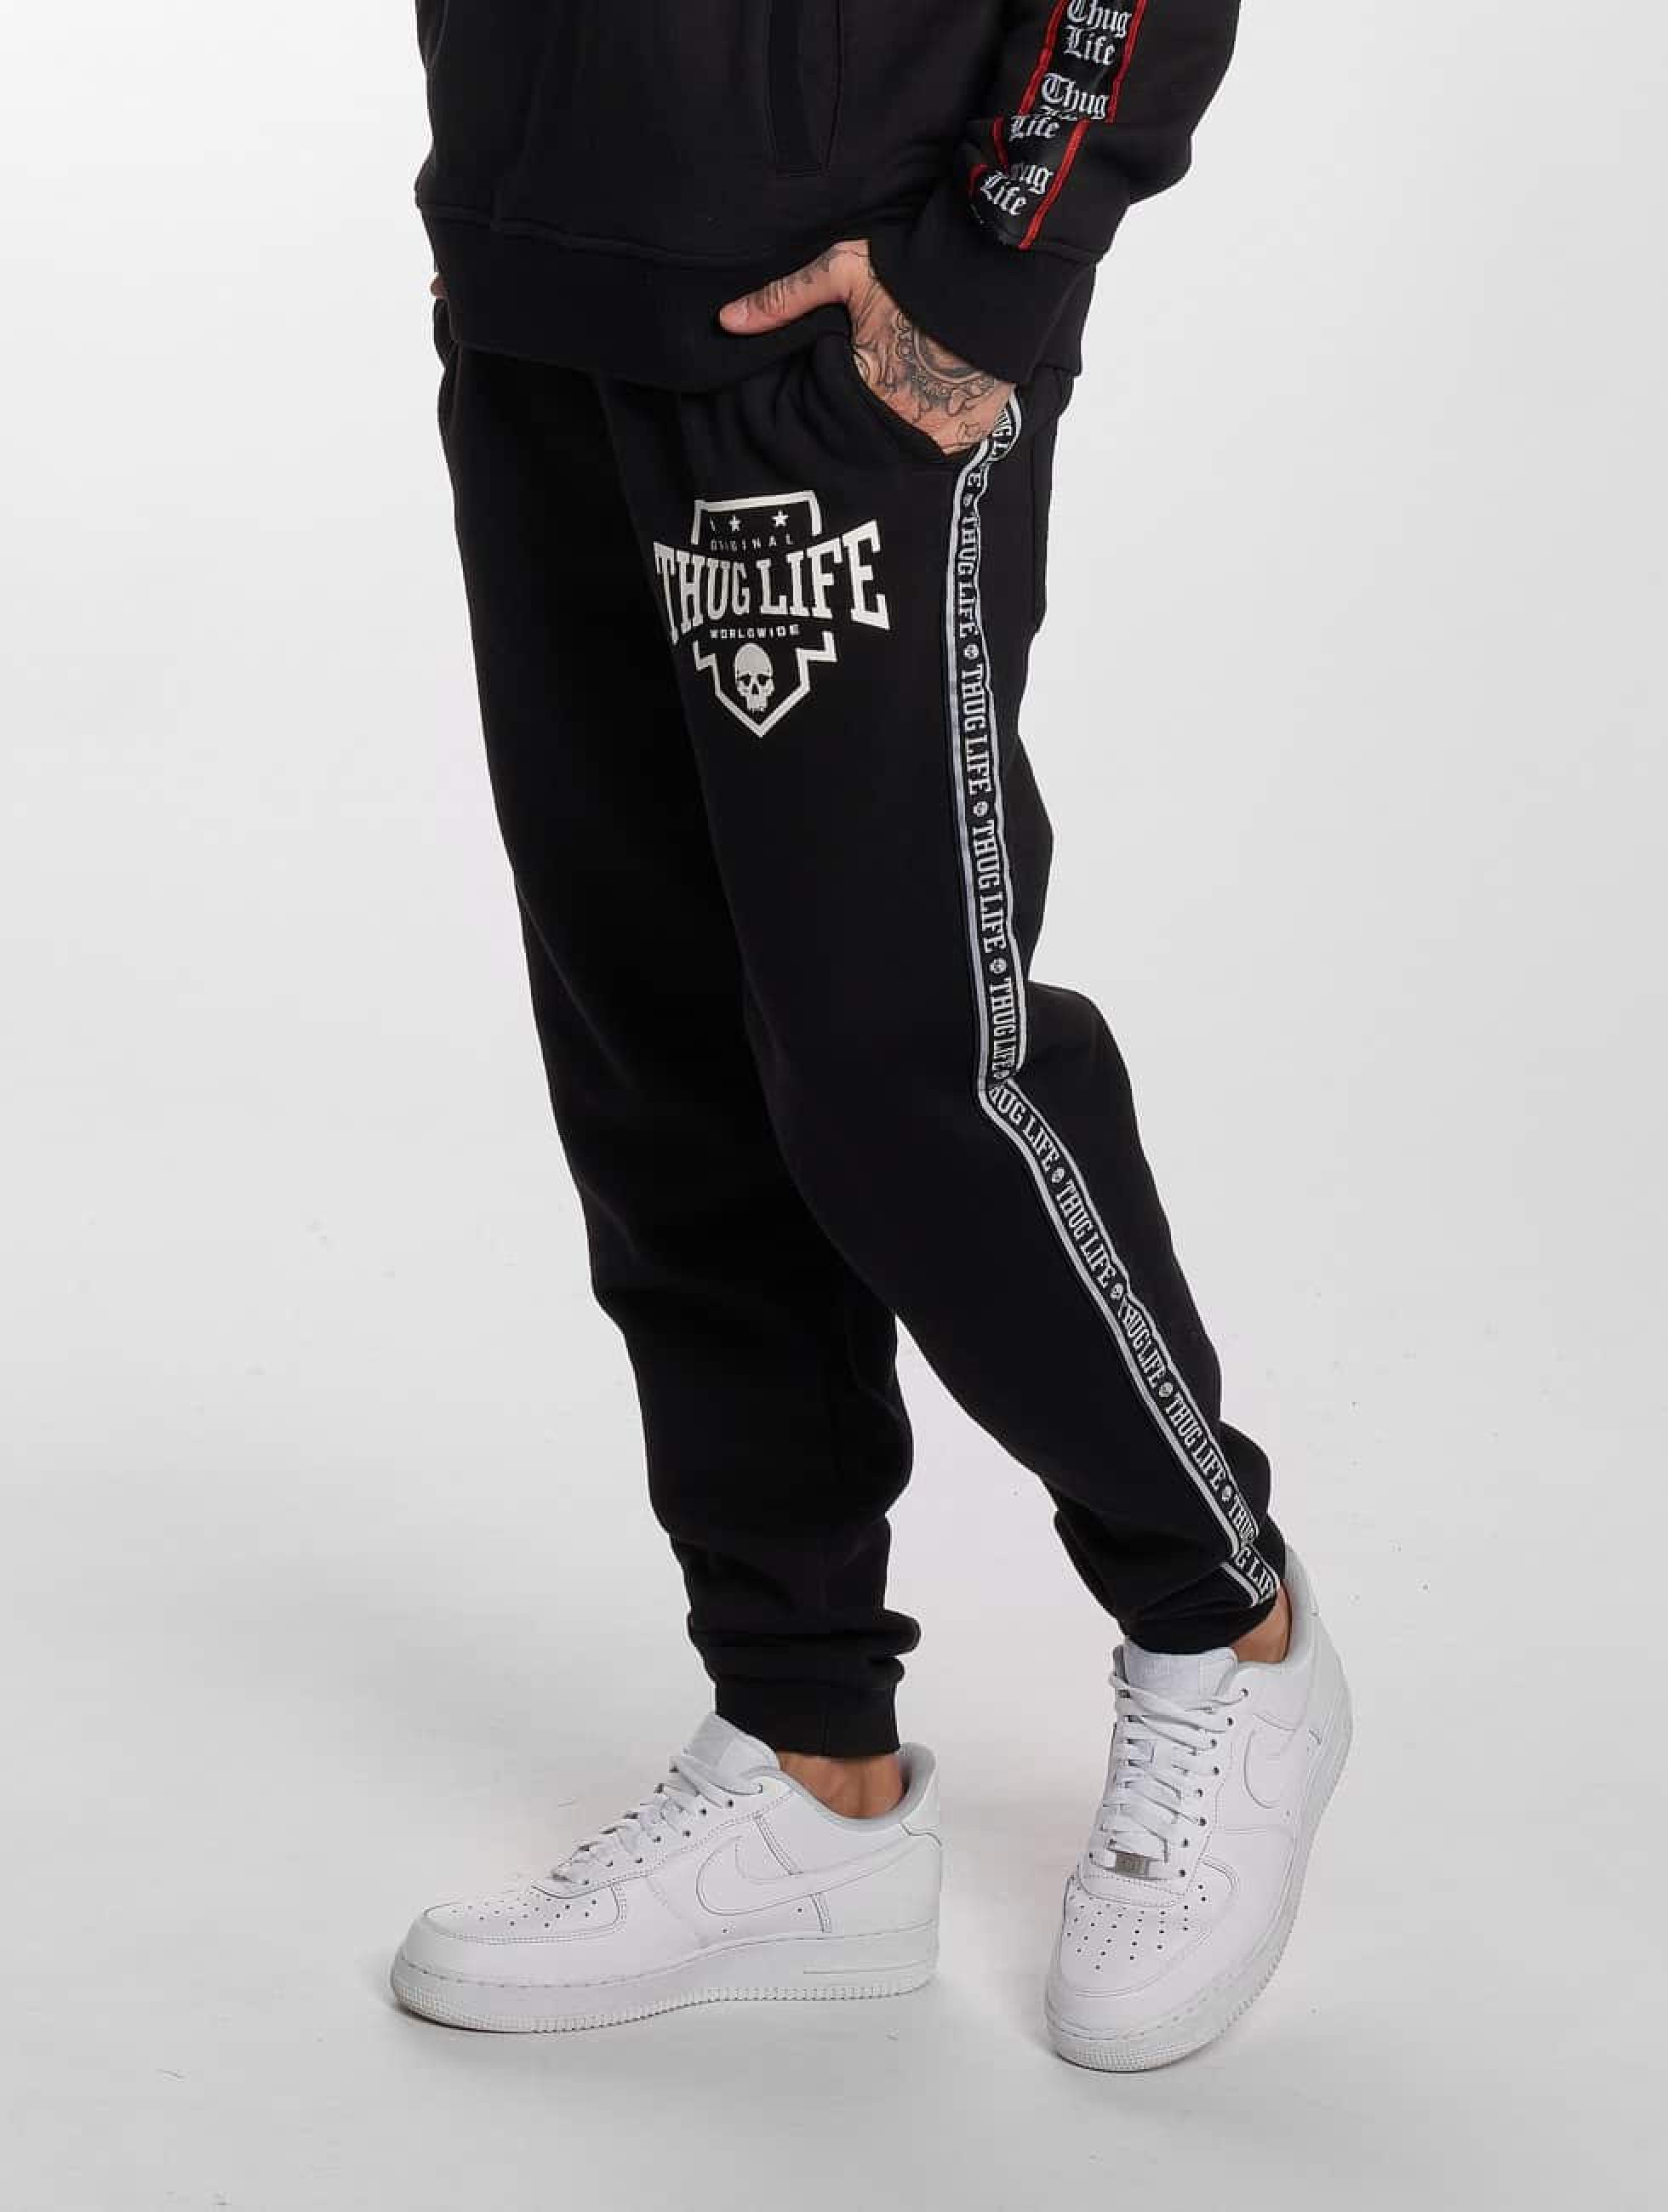 Thug Life / Sweat Pant Worldwide in black M